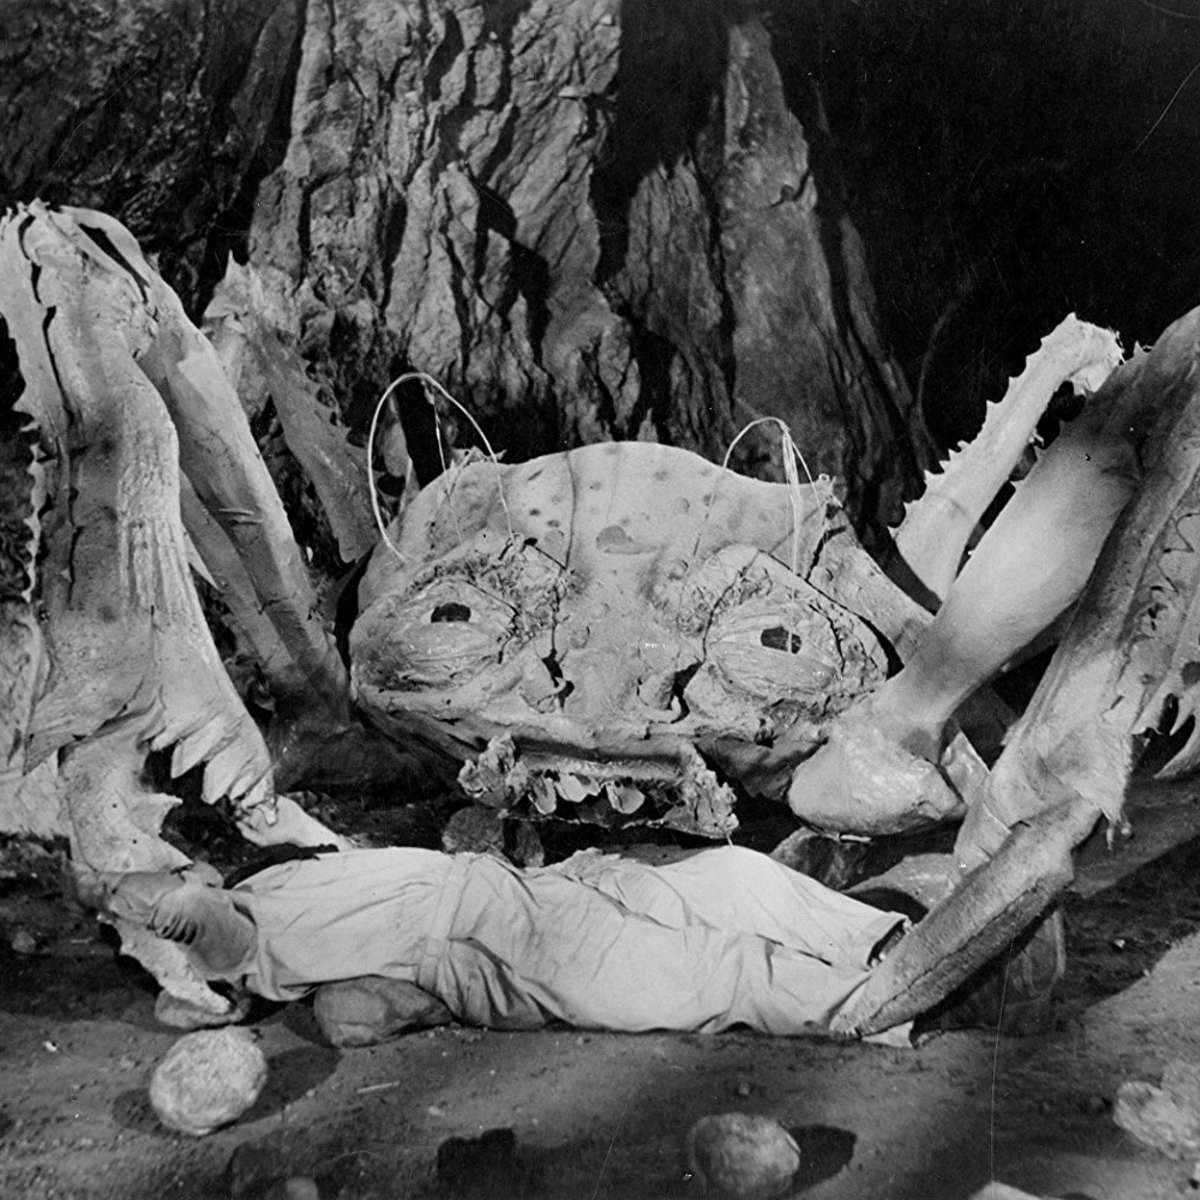 attack_of_the_crab_monsters.jpg